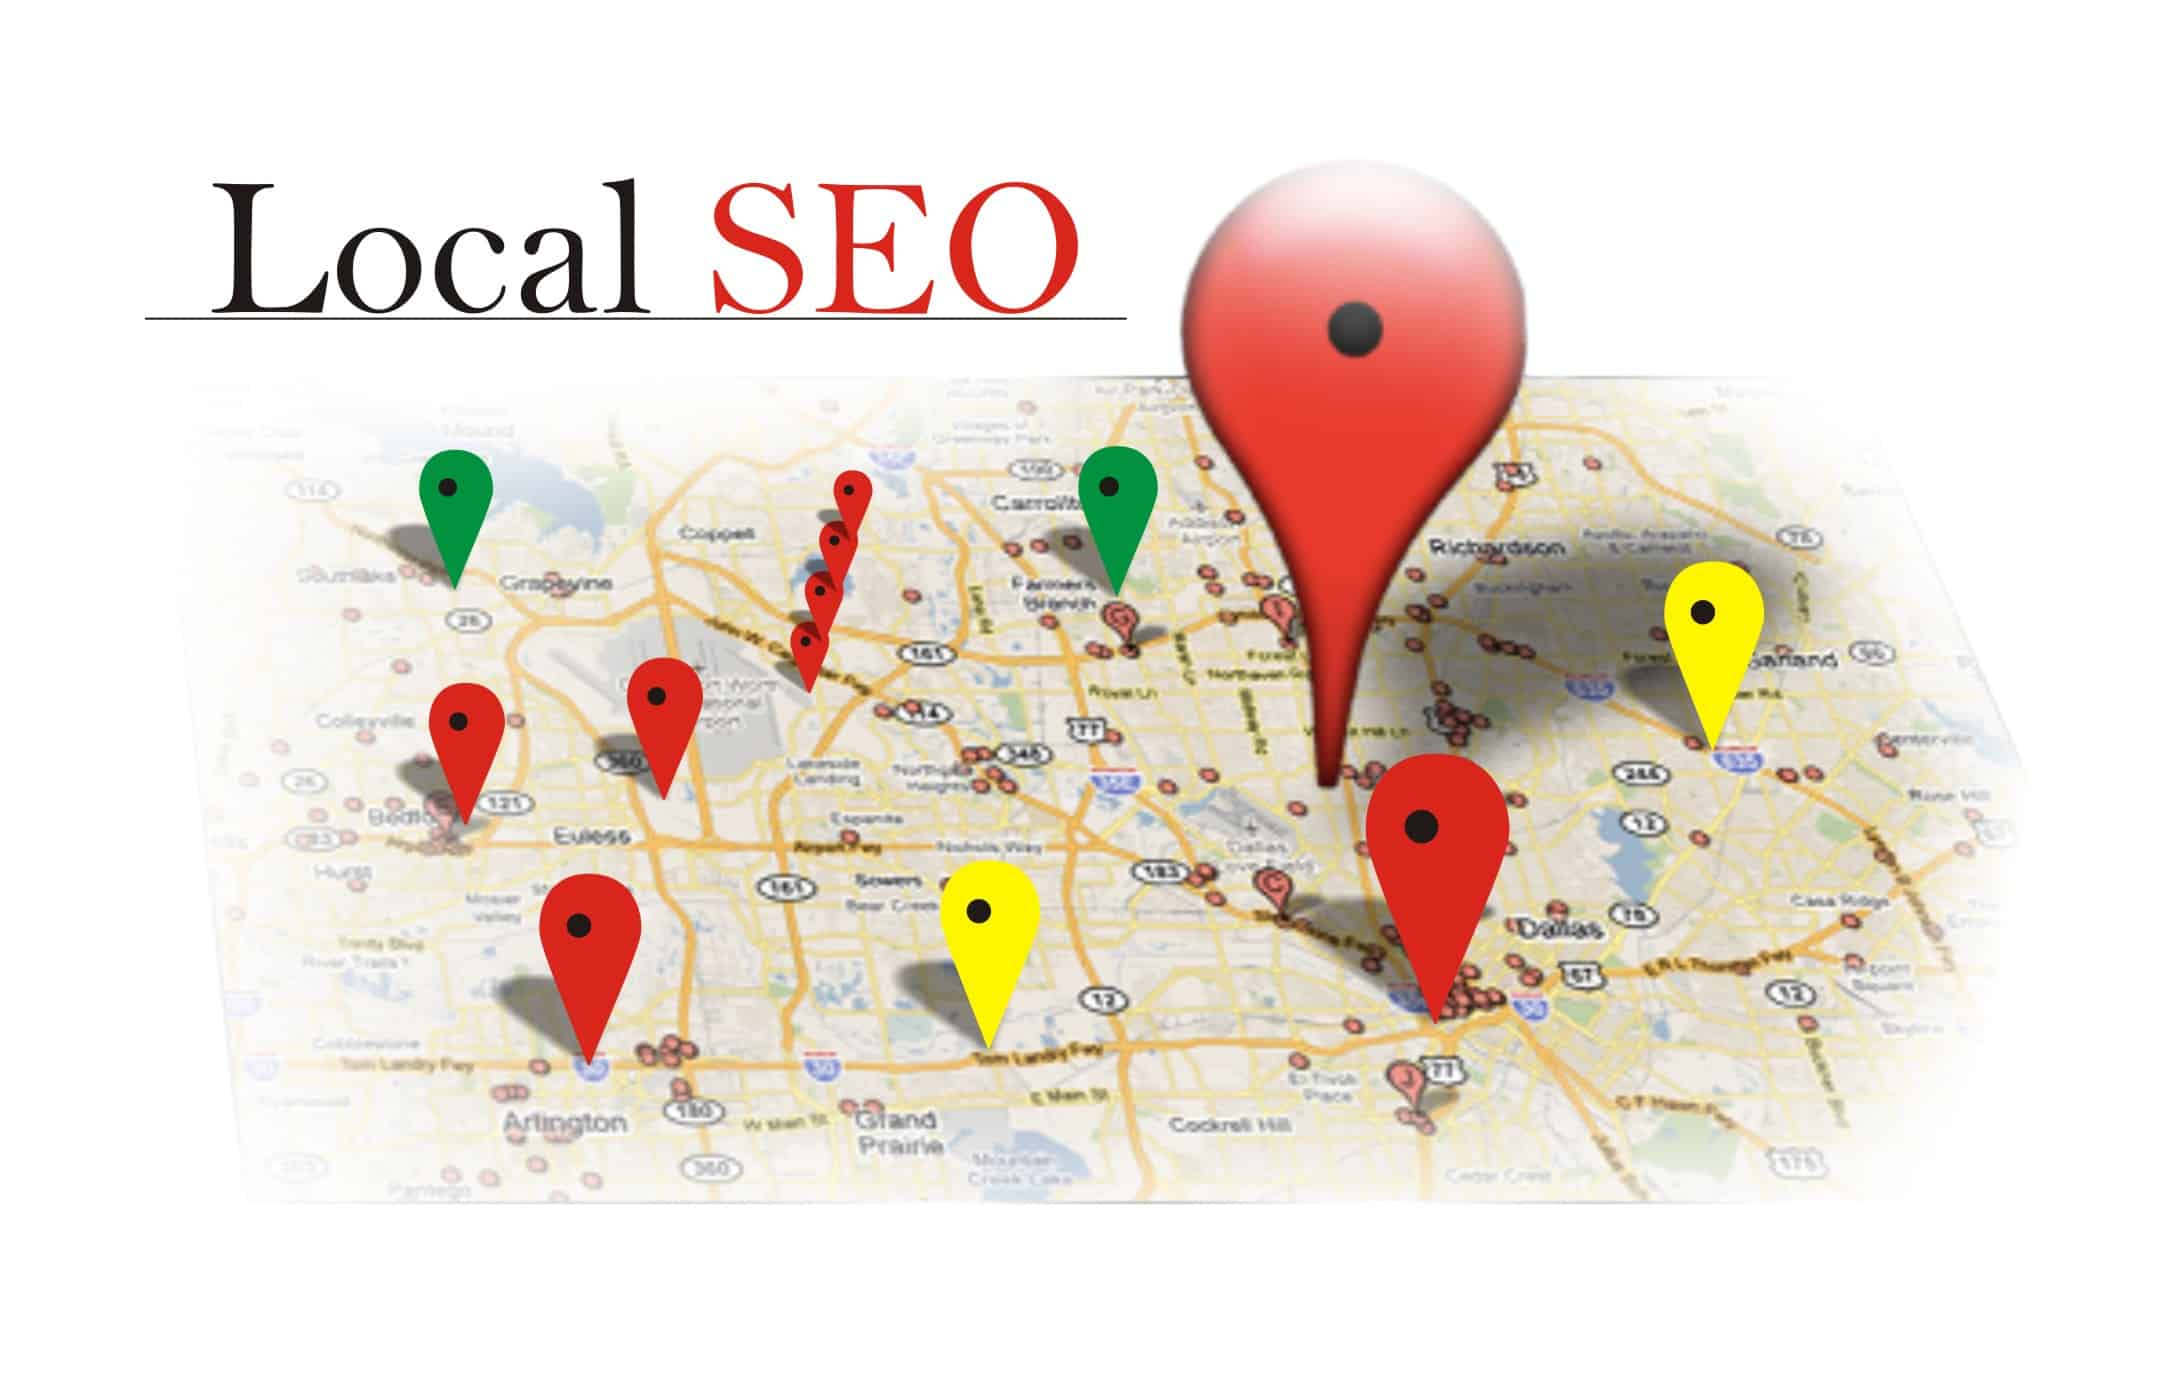 Local SEO Services | Local Digital Marketing Agency